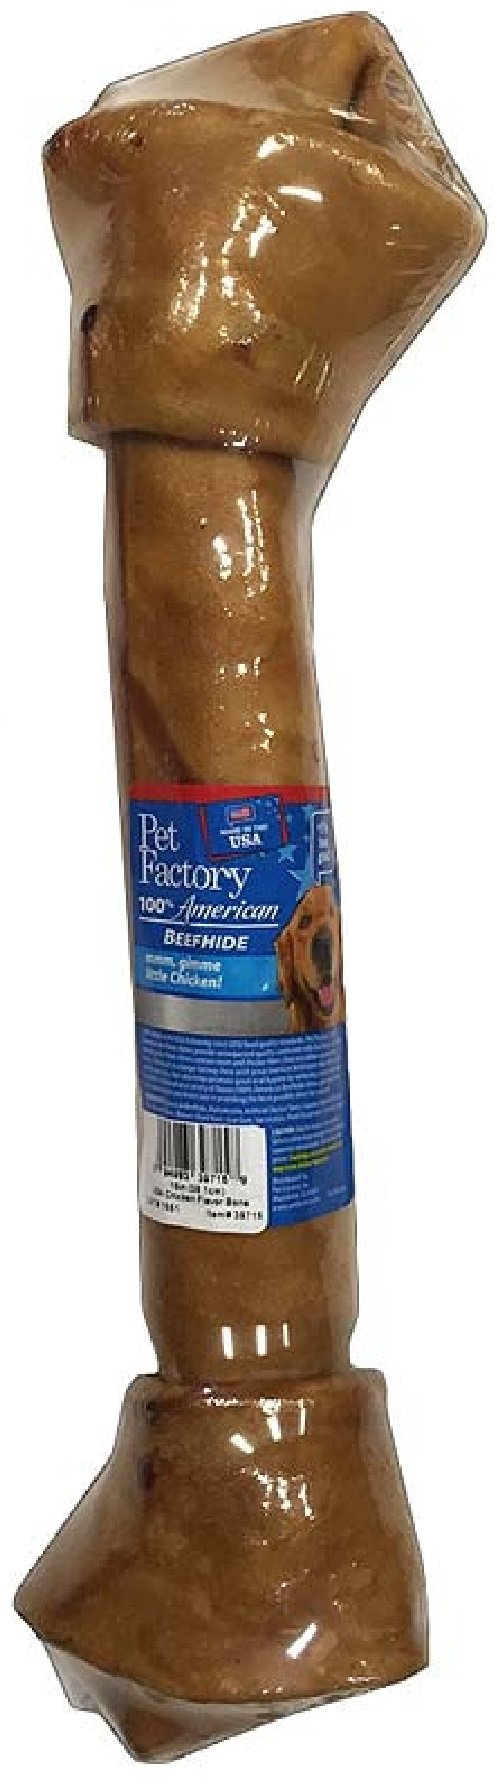 Pet Factory 39715 100% American Beefhide Chicken Flavored 15'' Rawhide Bone for Dogs. Made in USA